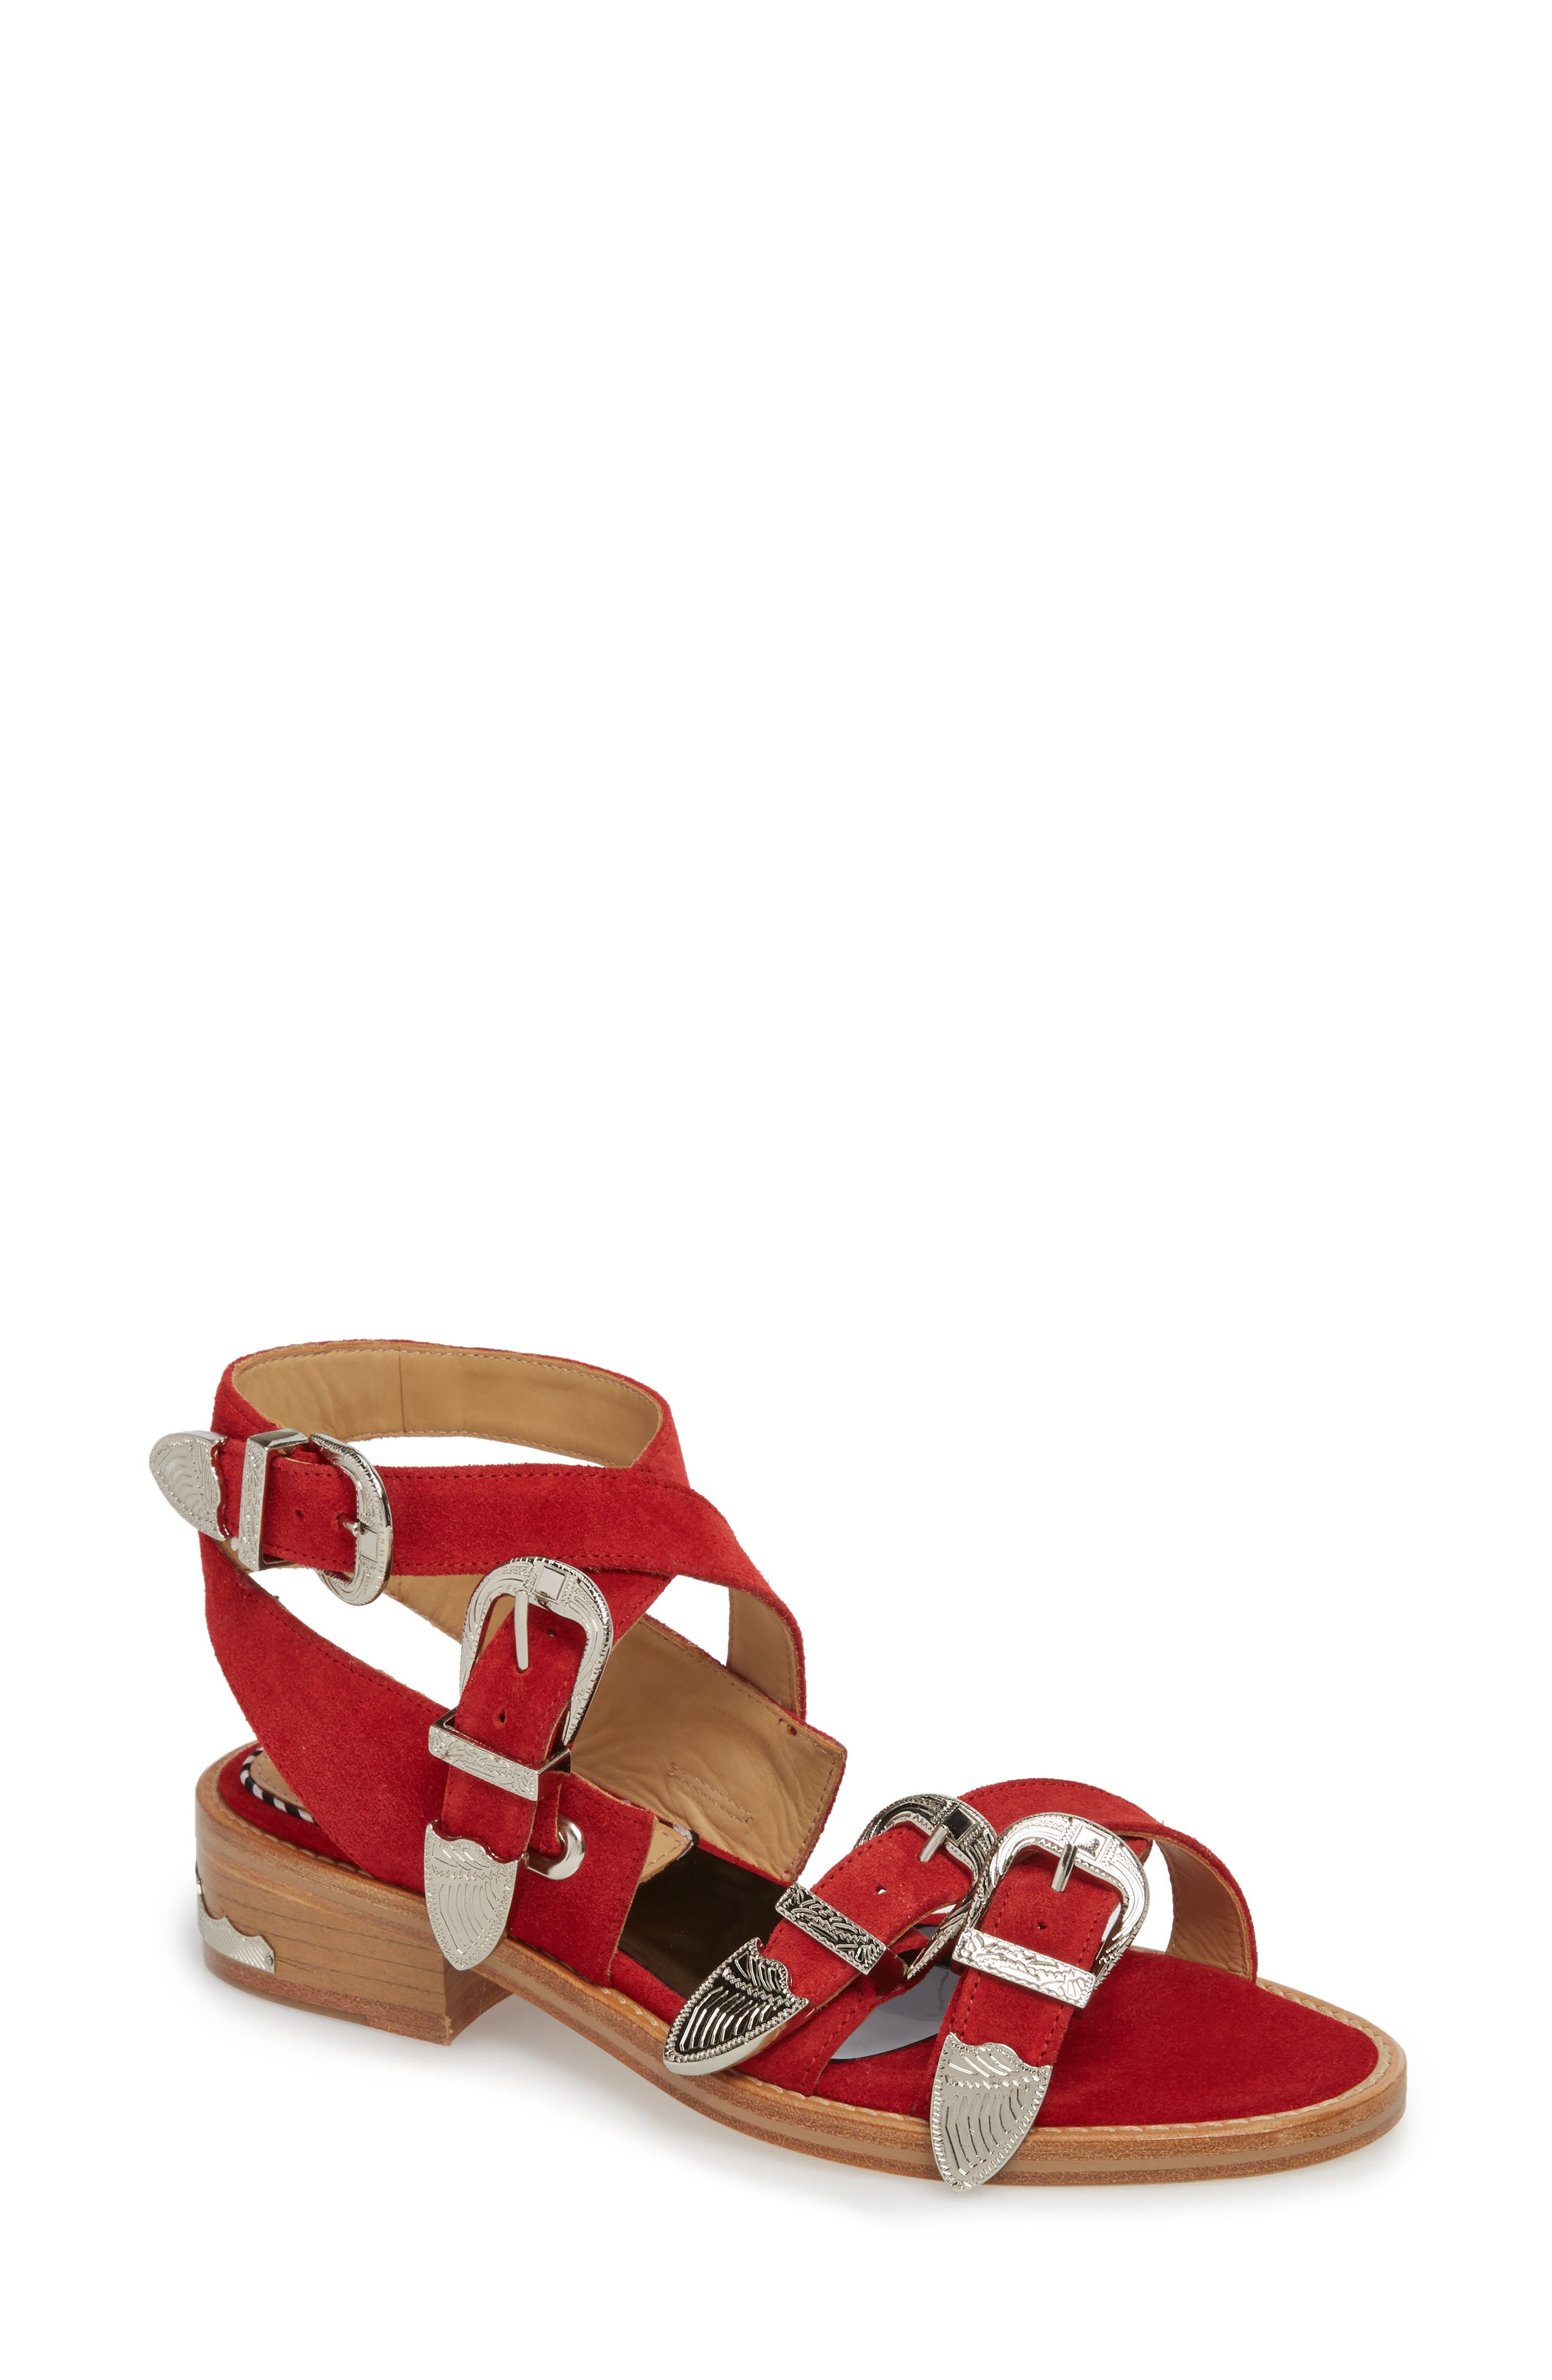 Western Suede Strappy Sandal,                         Main,                         color, 600